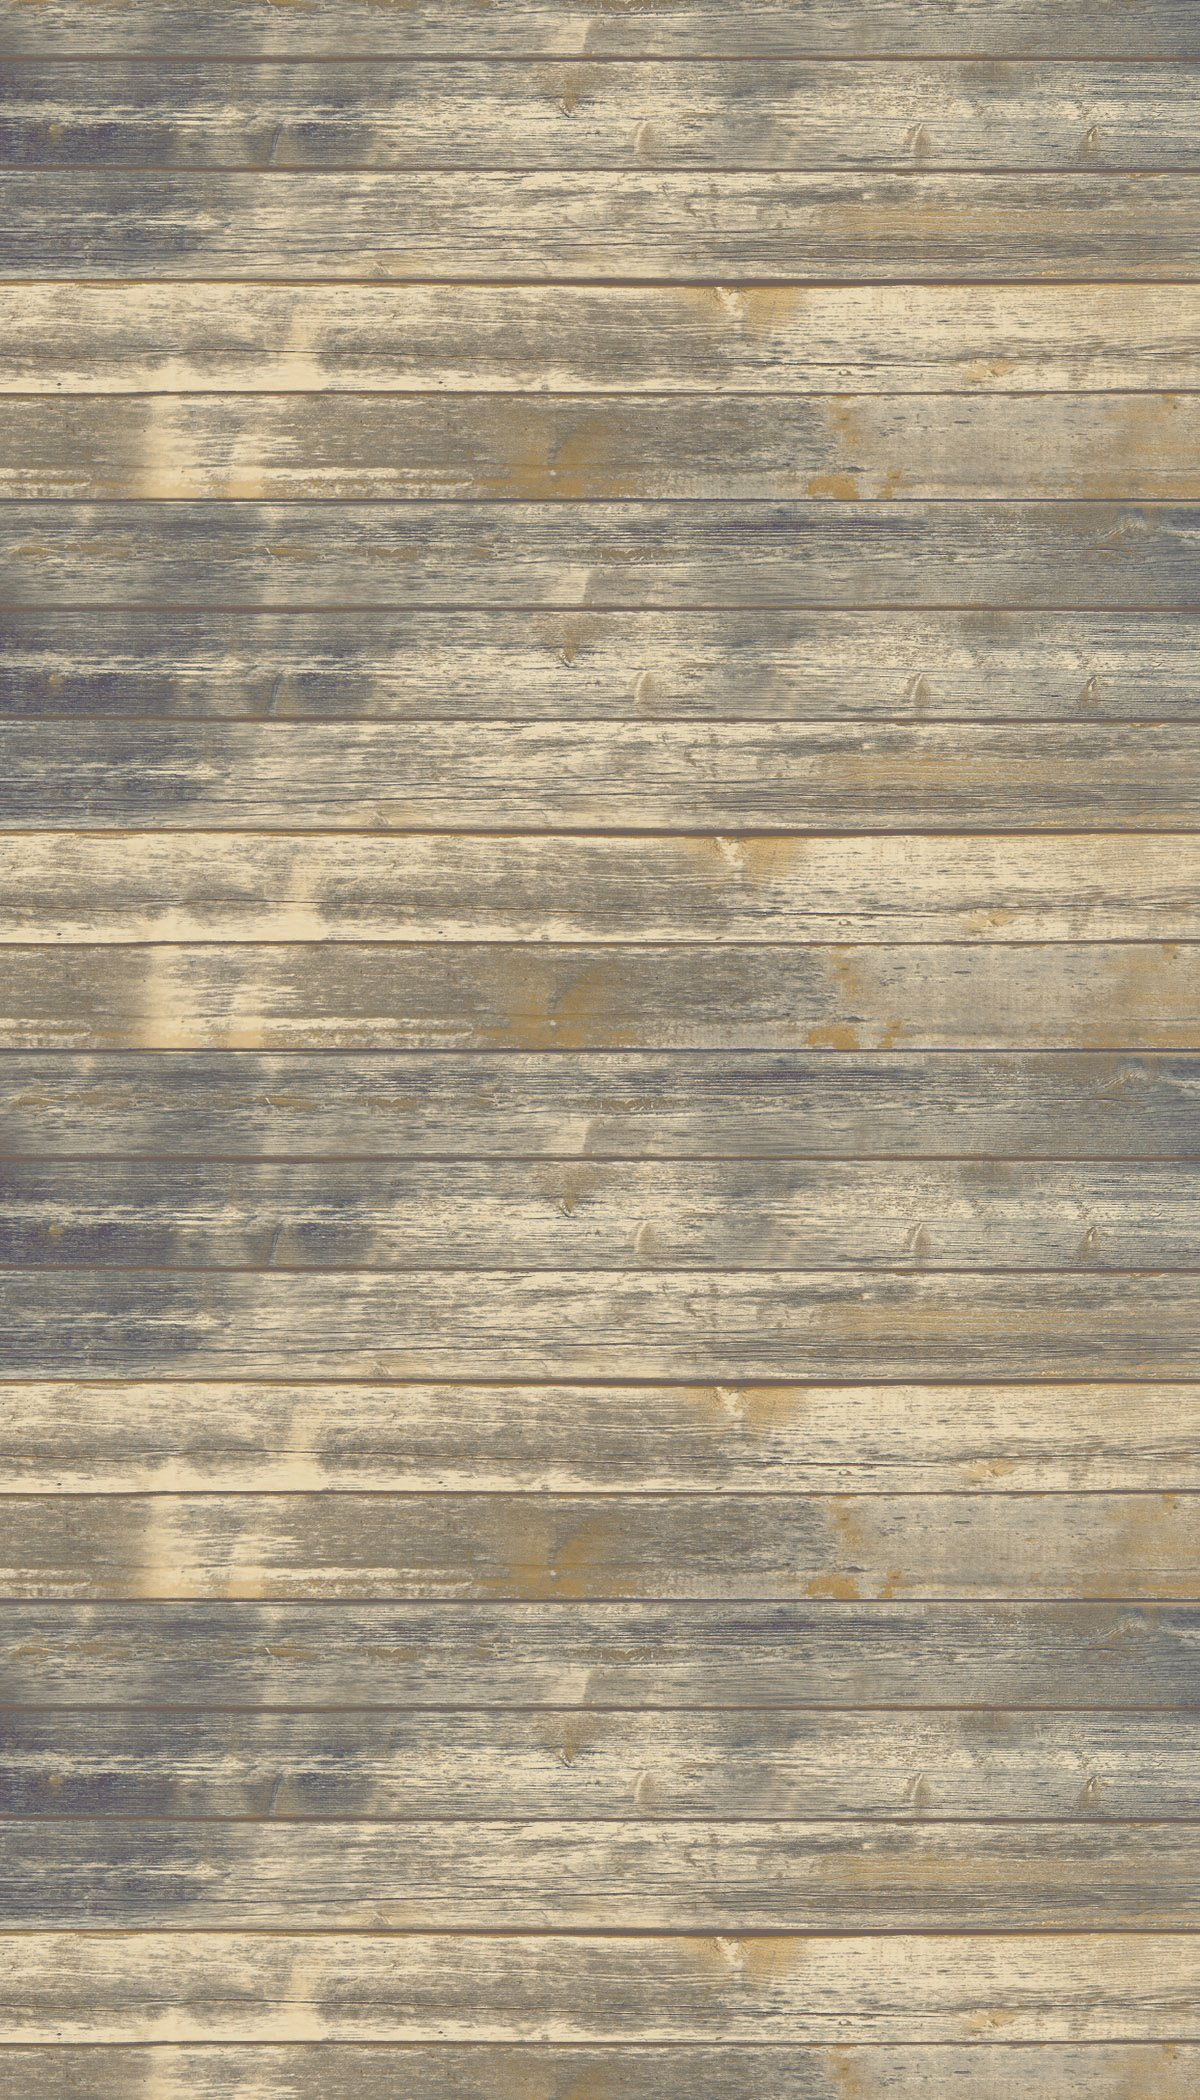 OFILA Rustic Wood Backdrop 14x10ft Wood Block Photos Background Wooden Wall Photos Hardwood Floor Background Wooden Plank Board Rustic Party Decoration Kids Photo Shoot Newborn Photography Props